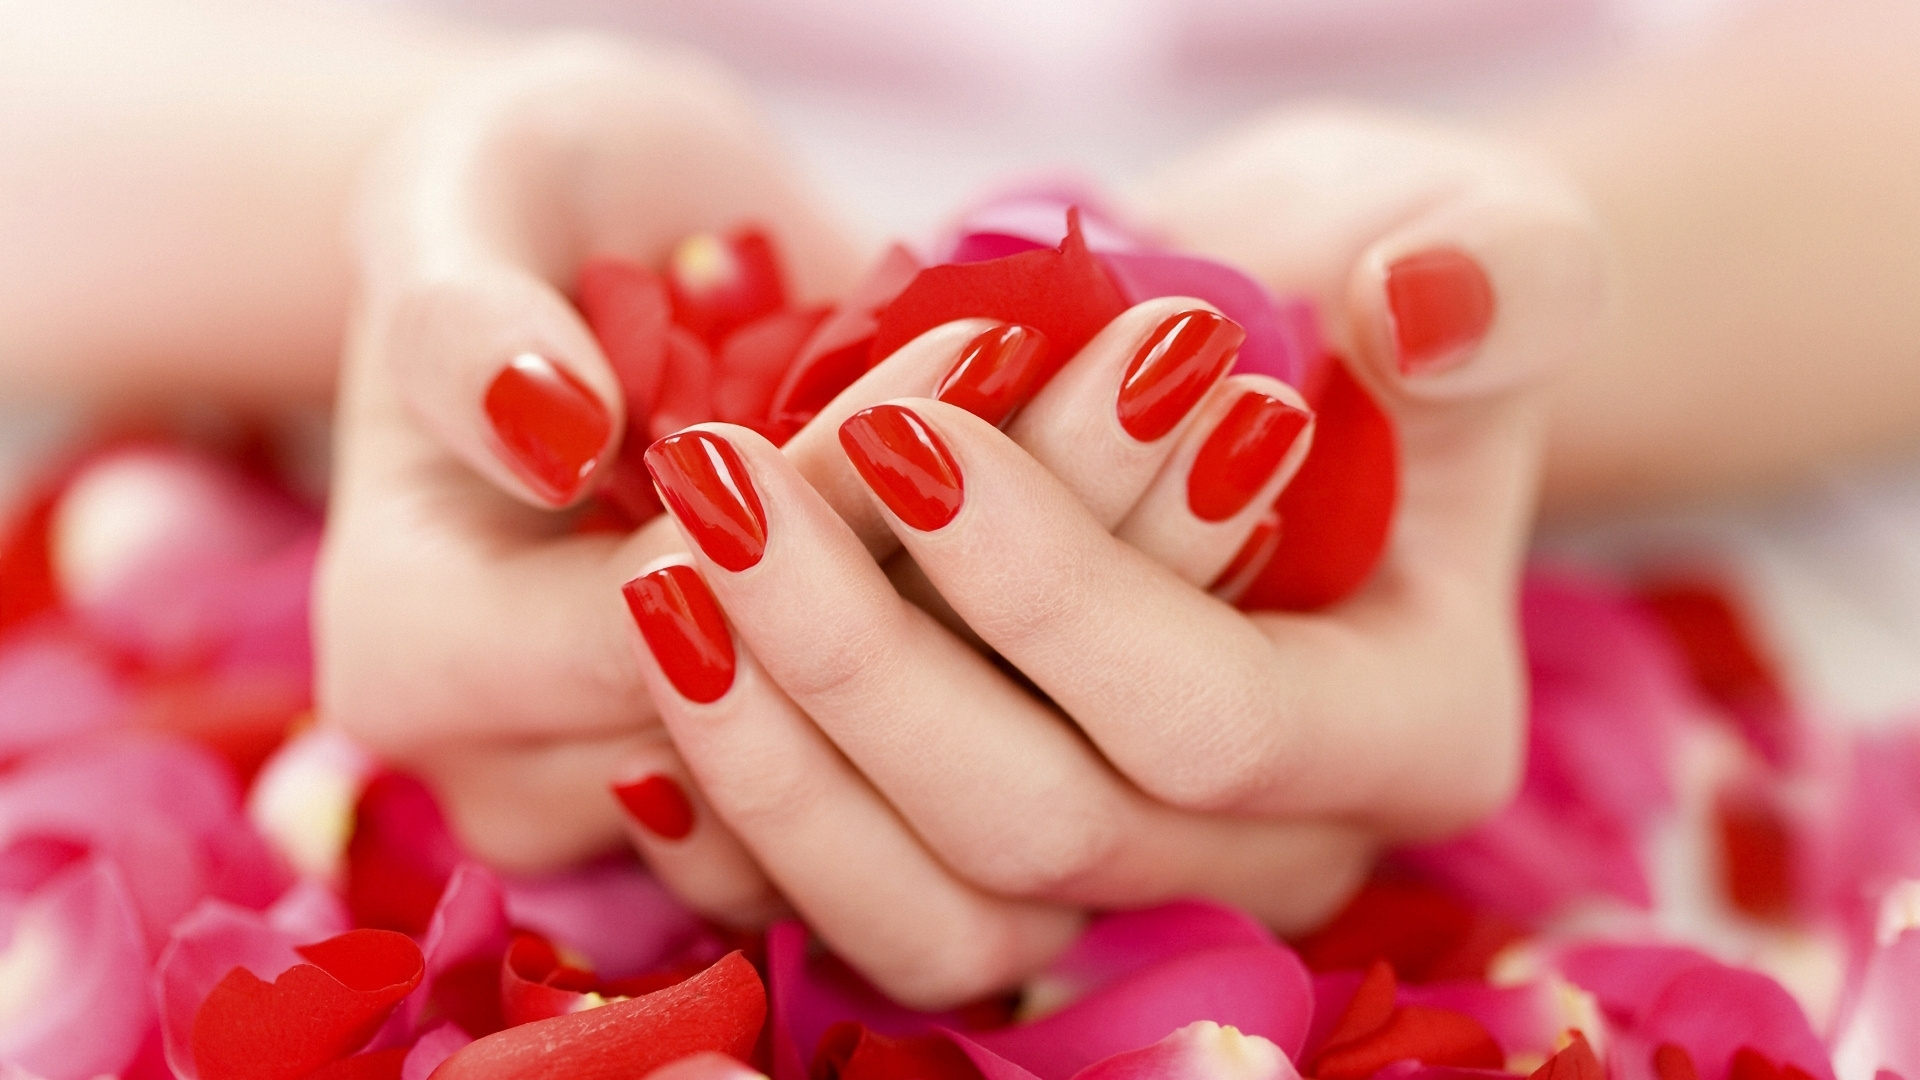 Lish Nail Salon Is A Premiere In Peoria Az That Offers Visitors Slice Of Time Being Pered Clean Safe And Luxurious Environment